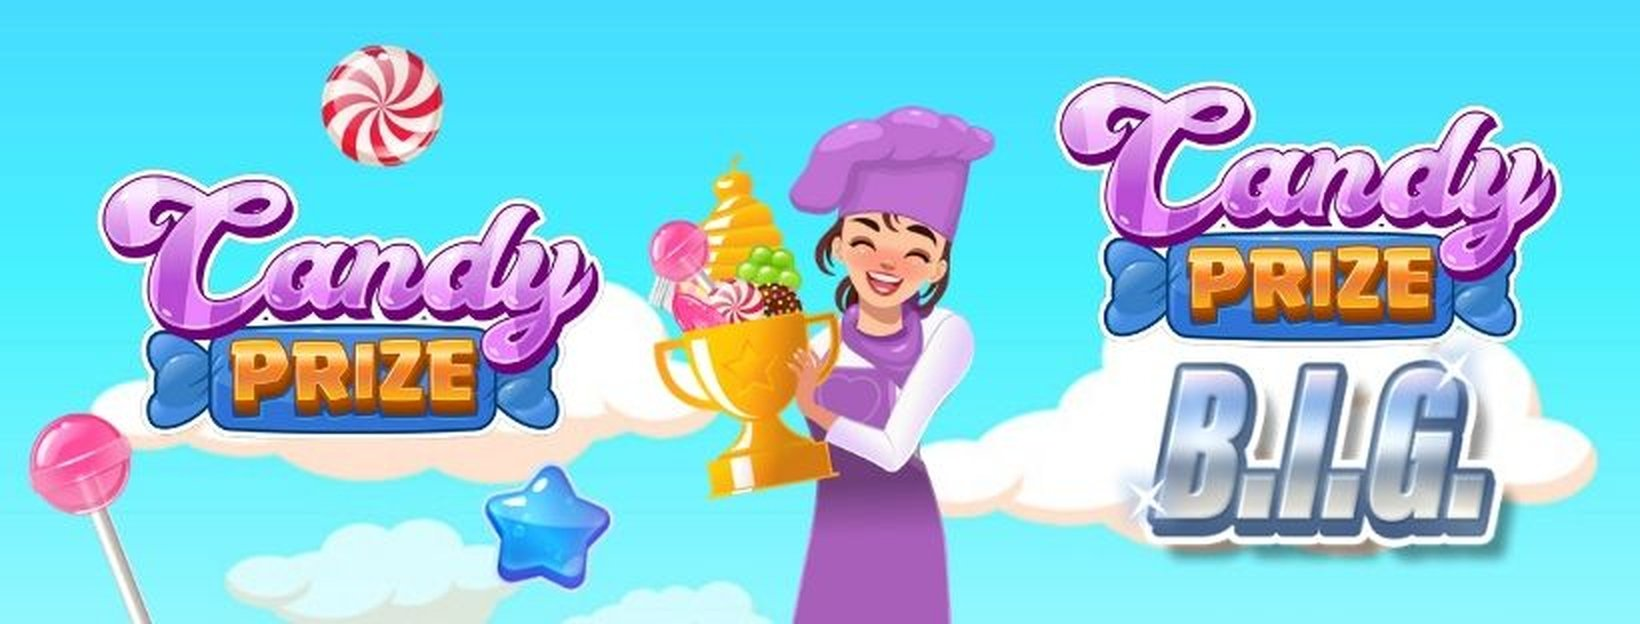 The Candy Prize Online Slot Demo Game by Green Jade Games